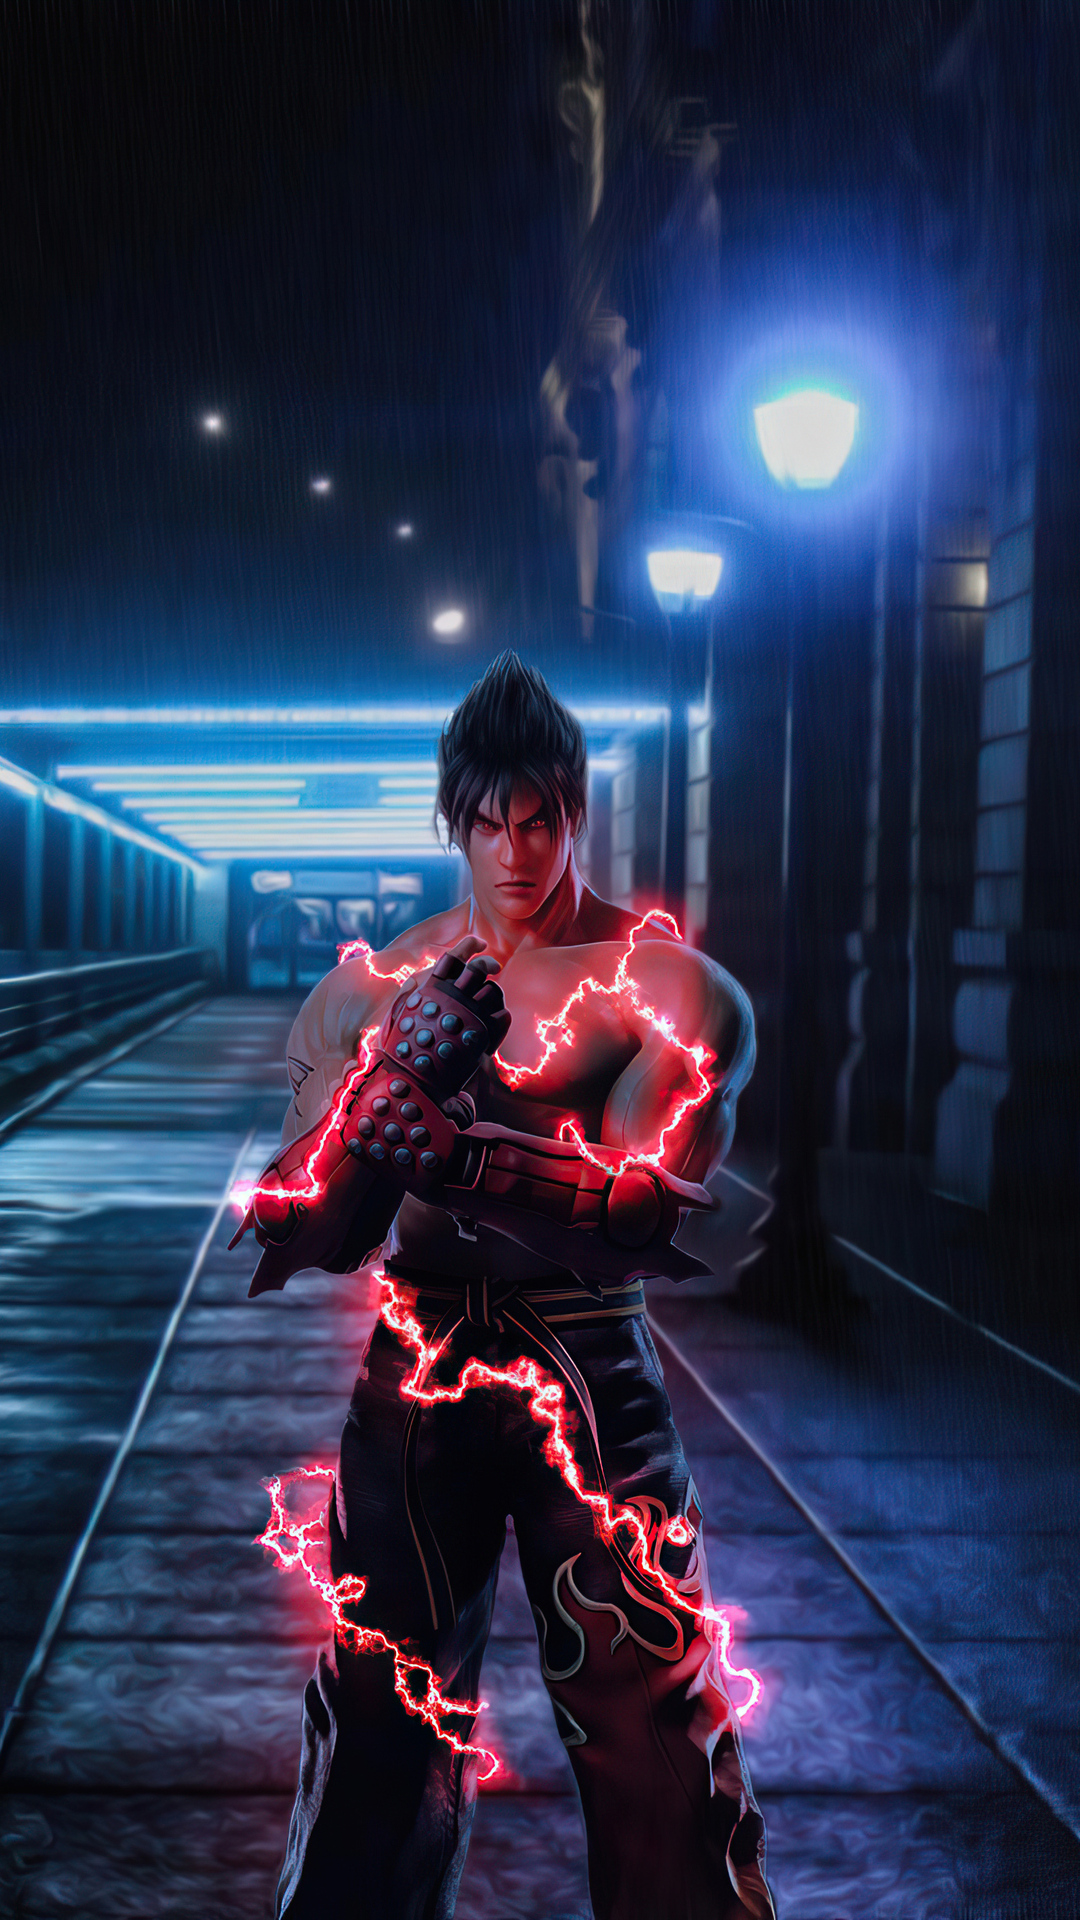 1080x1920 Tekken 7 Jin Kazama Iphone 7 6s 6 Plus Pixel Xl One Plus 3 3t 5 Hd 4k Wallpapers Images Backgrounds Photos And Pictures